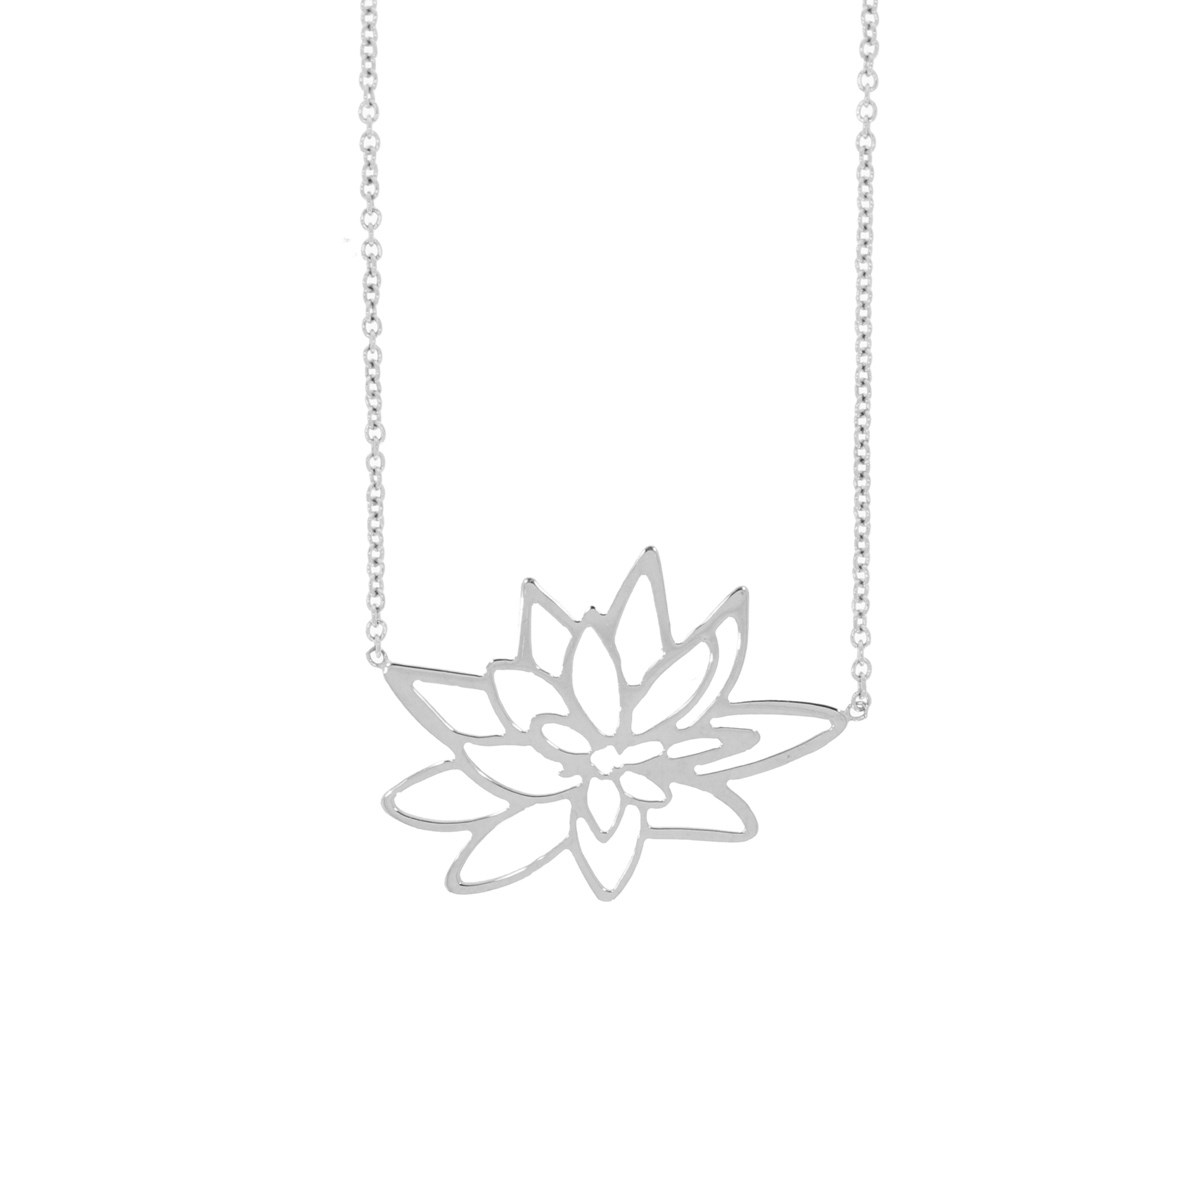 Collier chaîne fleur de lotus or 18 carats - Be Jewels!